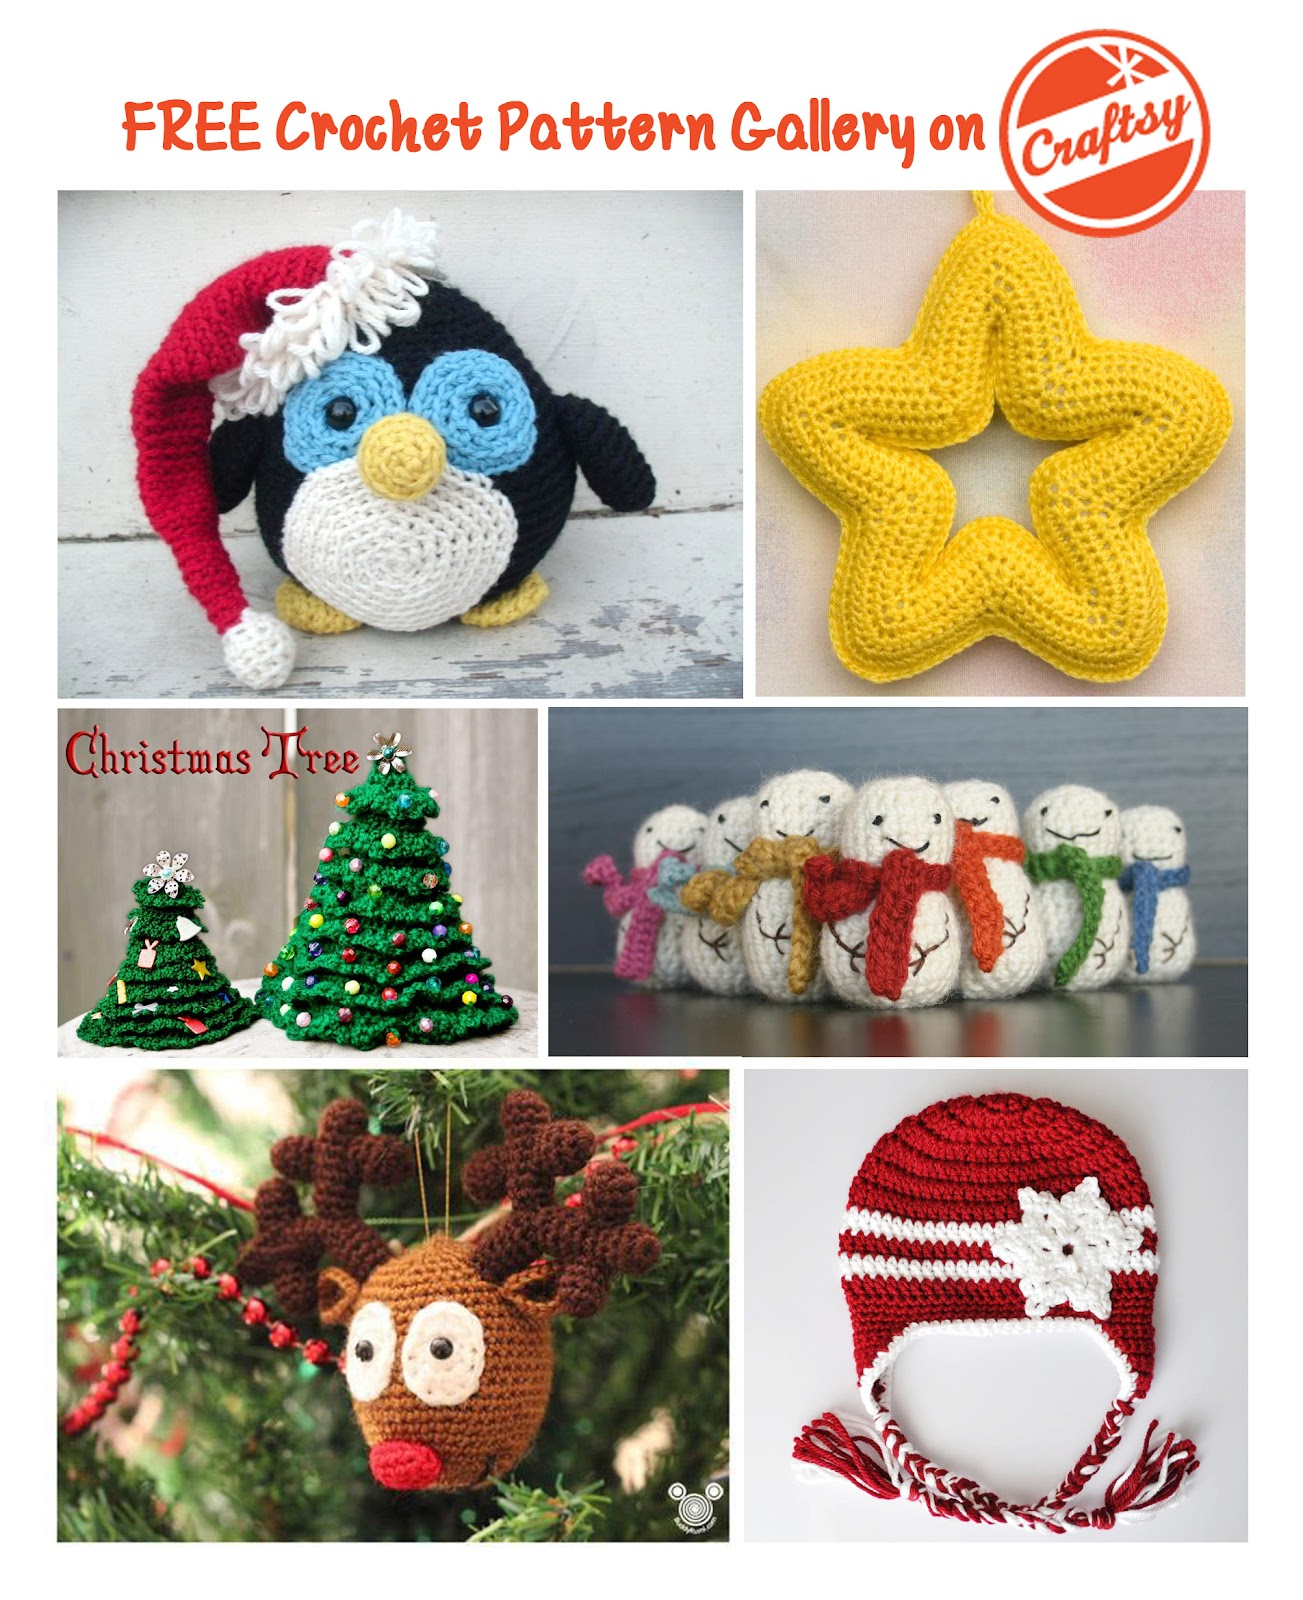 Free Crochet Patterns Gallery on Craftsy - Repeat Crafter Me